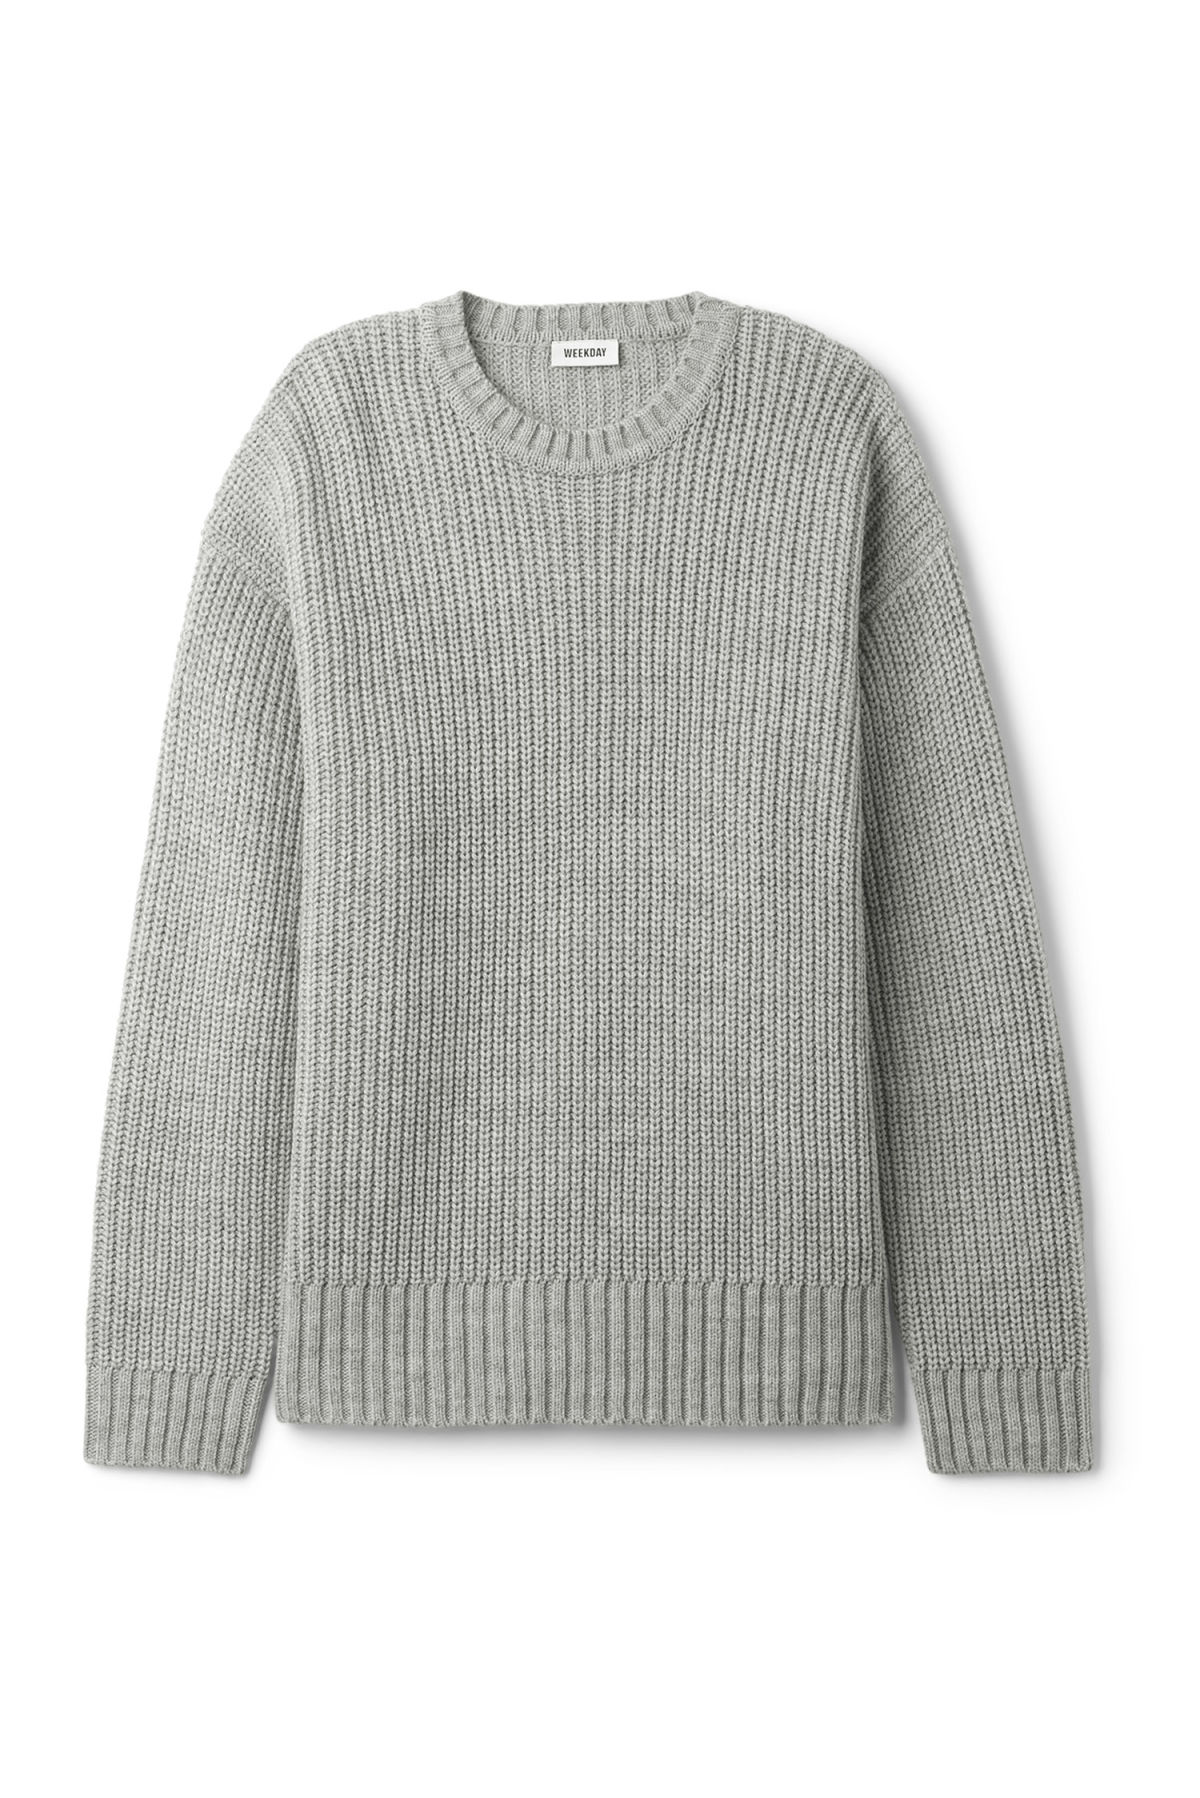 Front image of Weekday dieago sweater in grey